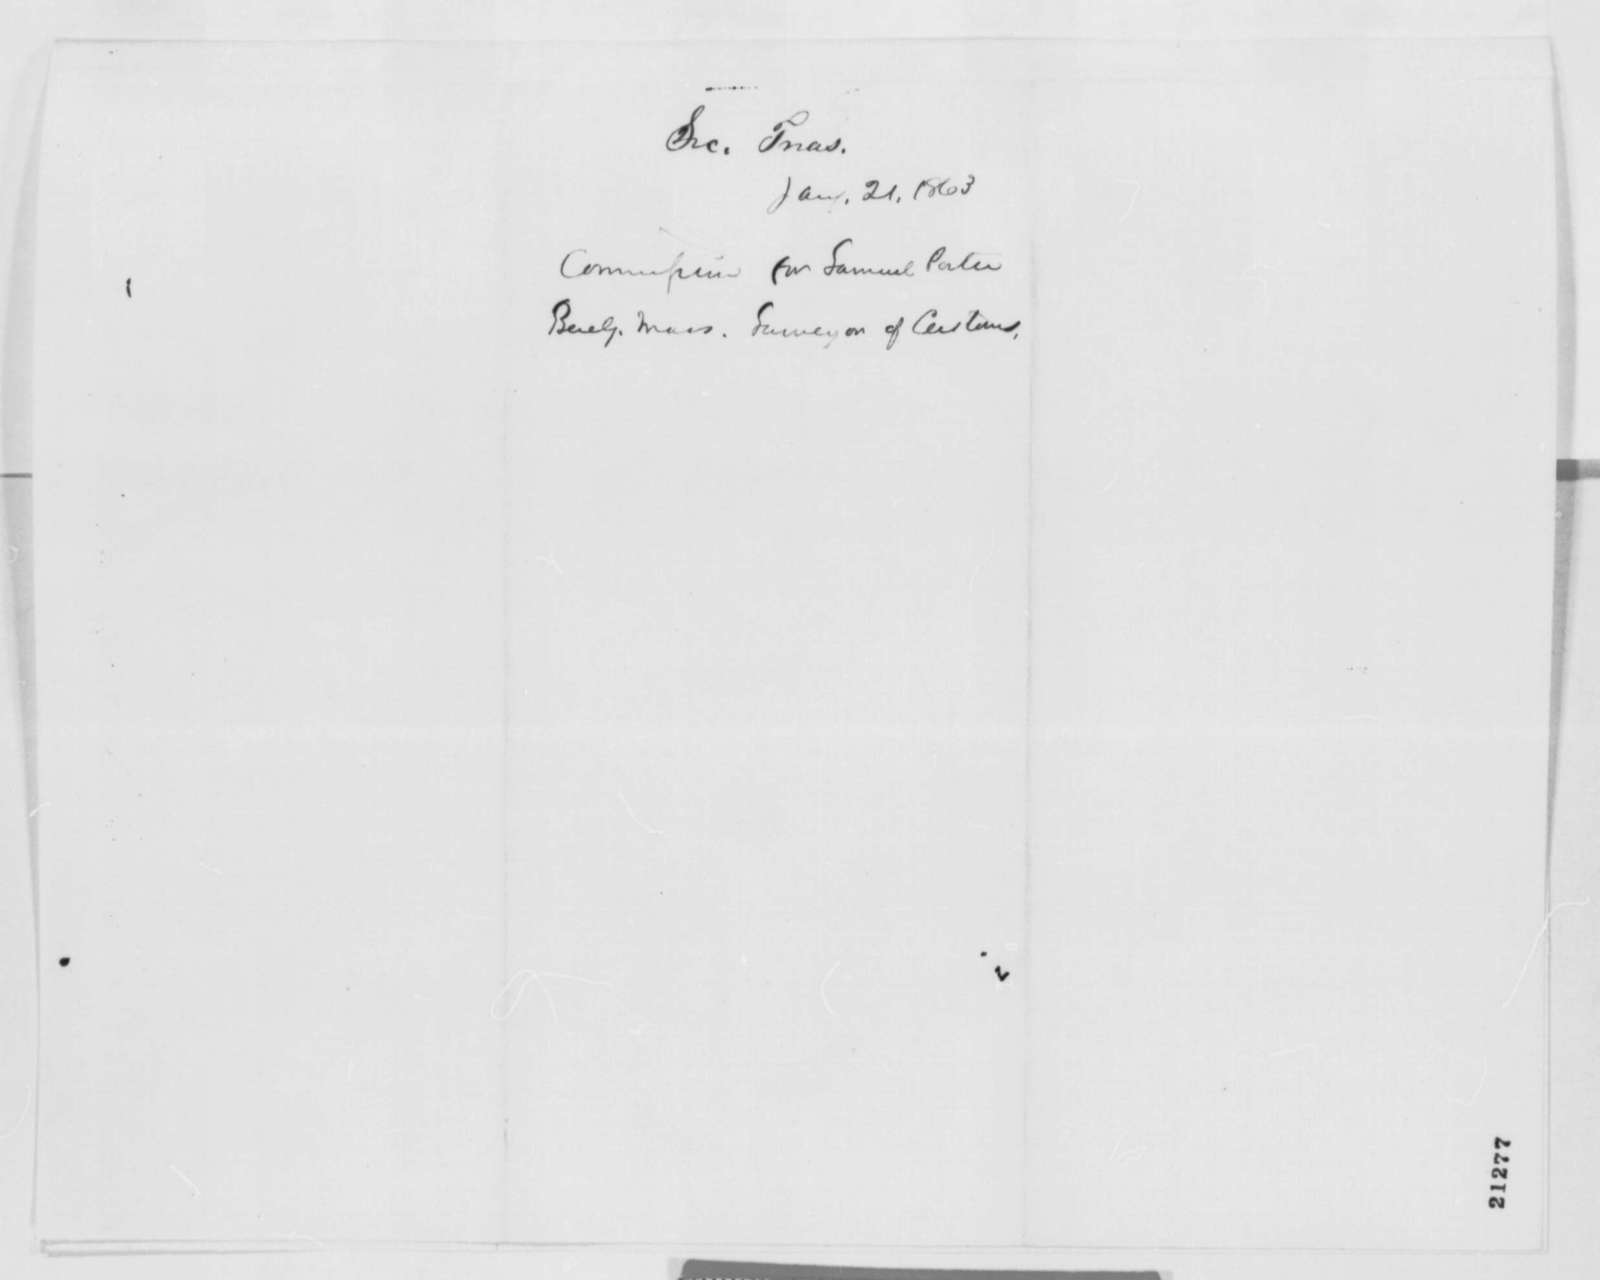 Salmon P. Chase to Abraham Lincoln, Wednesday, January 21, 1863  (Sends commission)